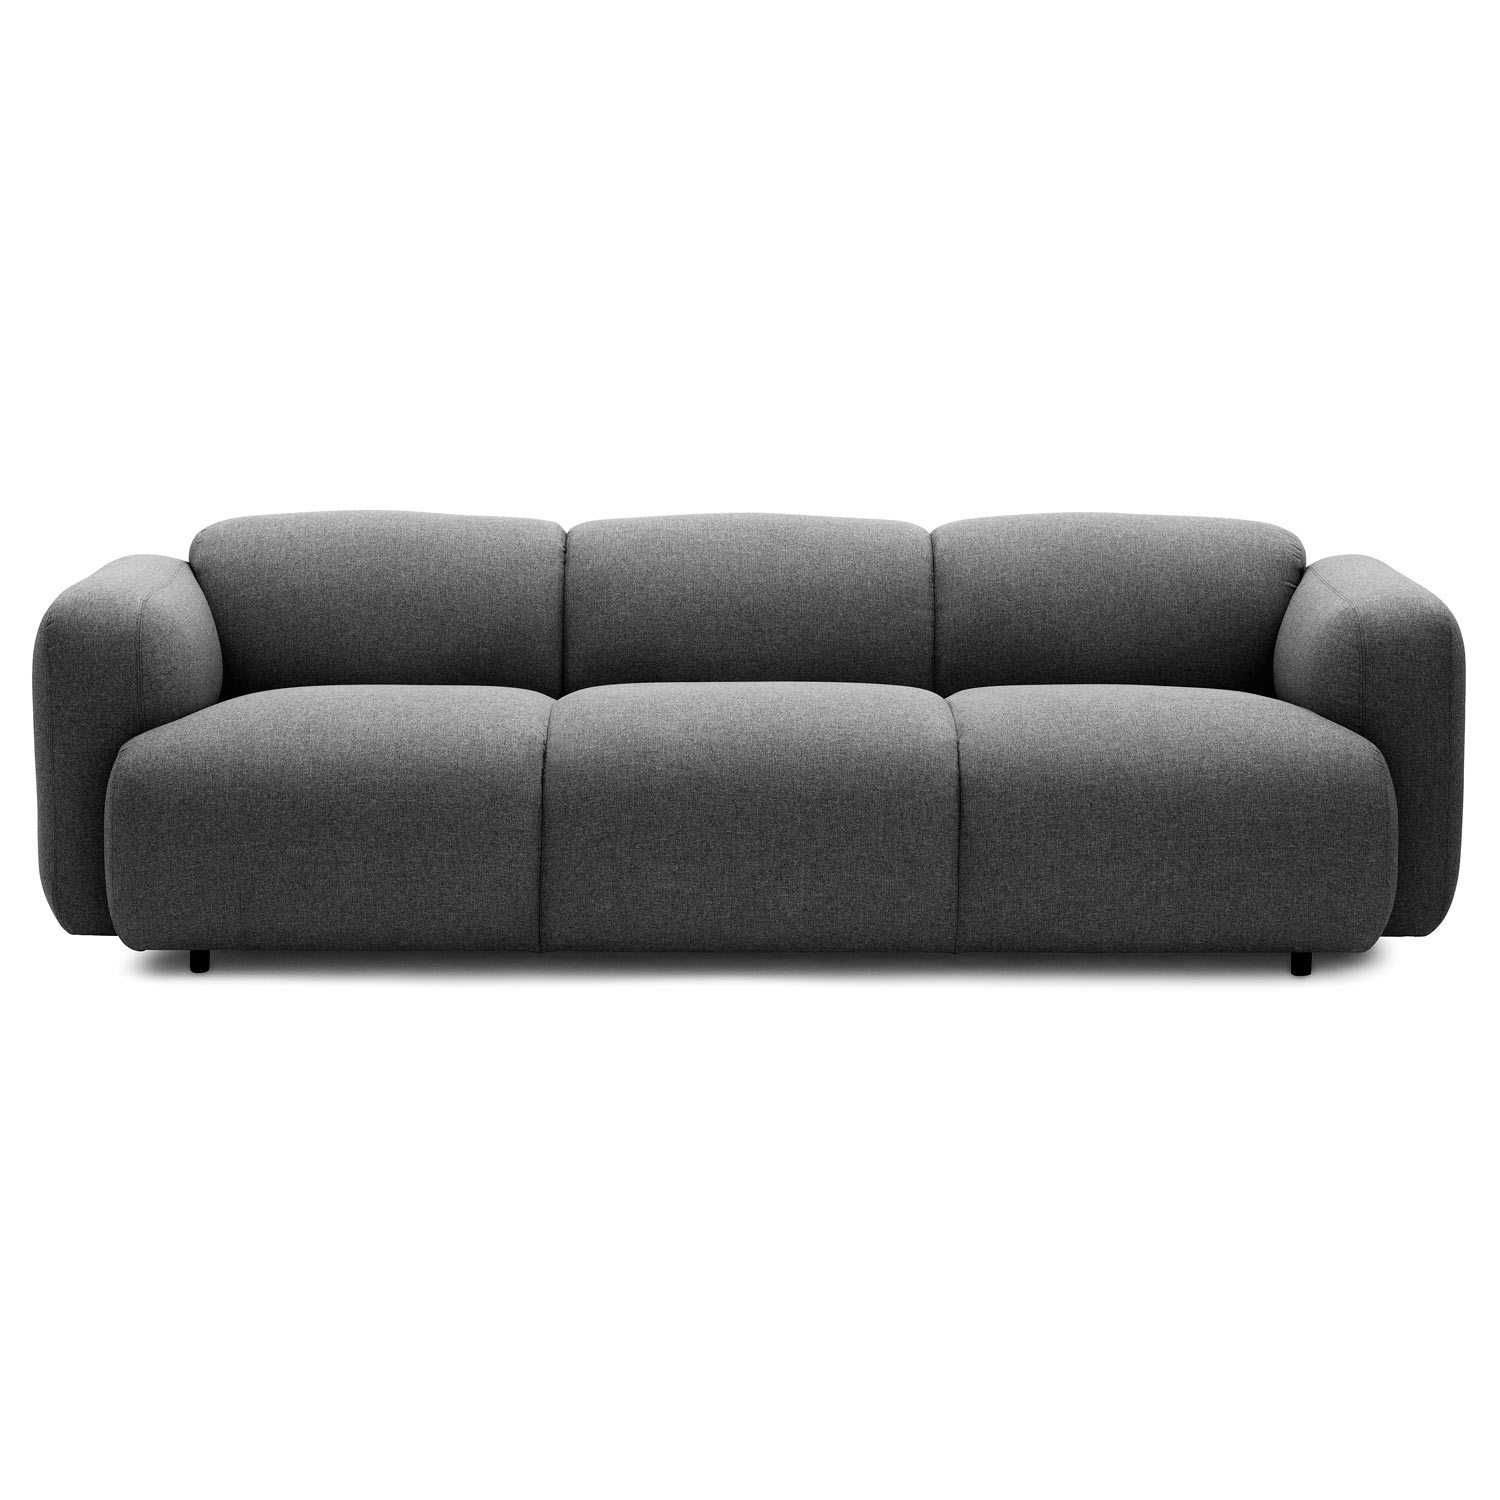 Grey Sofa 25 Grey Sofa Ideas For Living Room Grey Couches For Sale